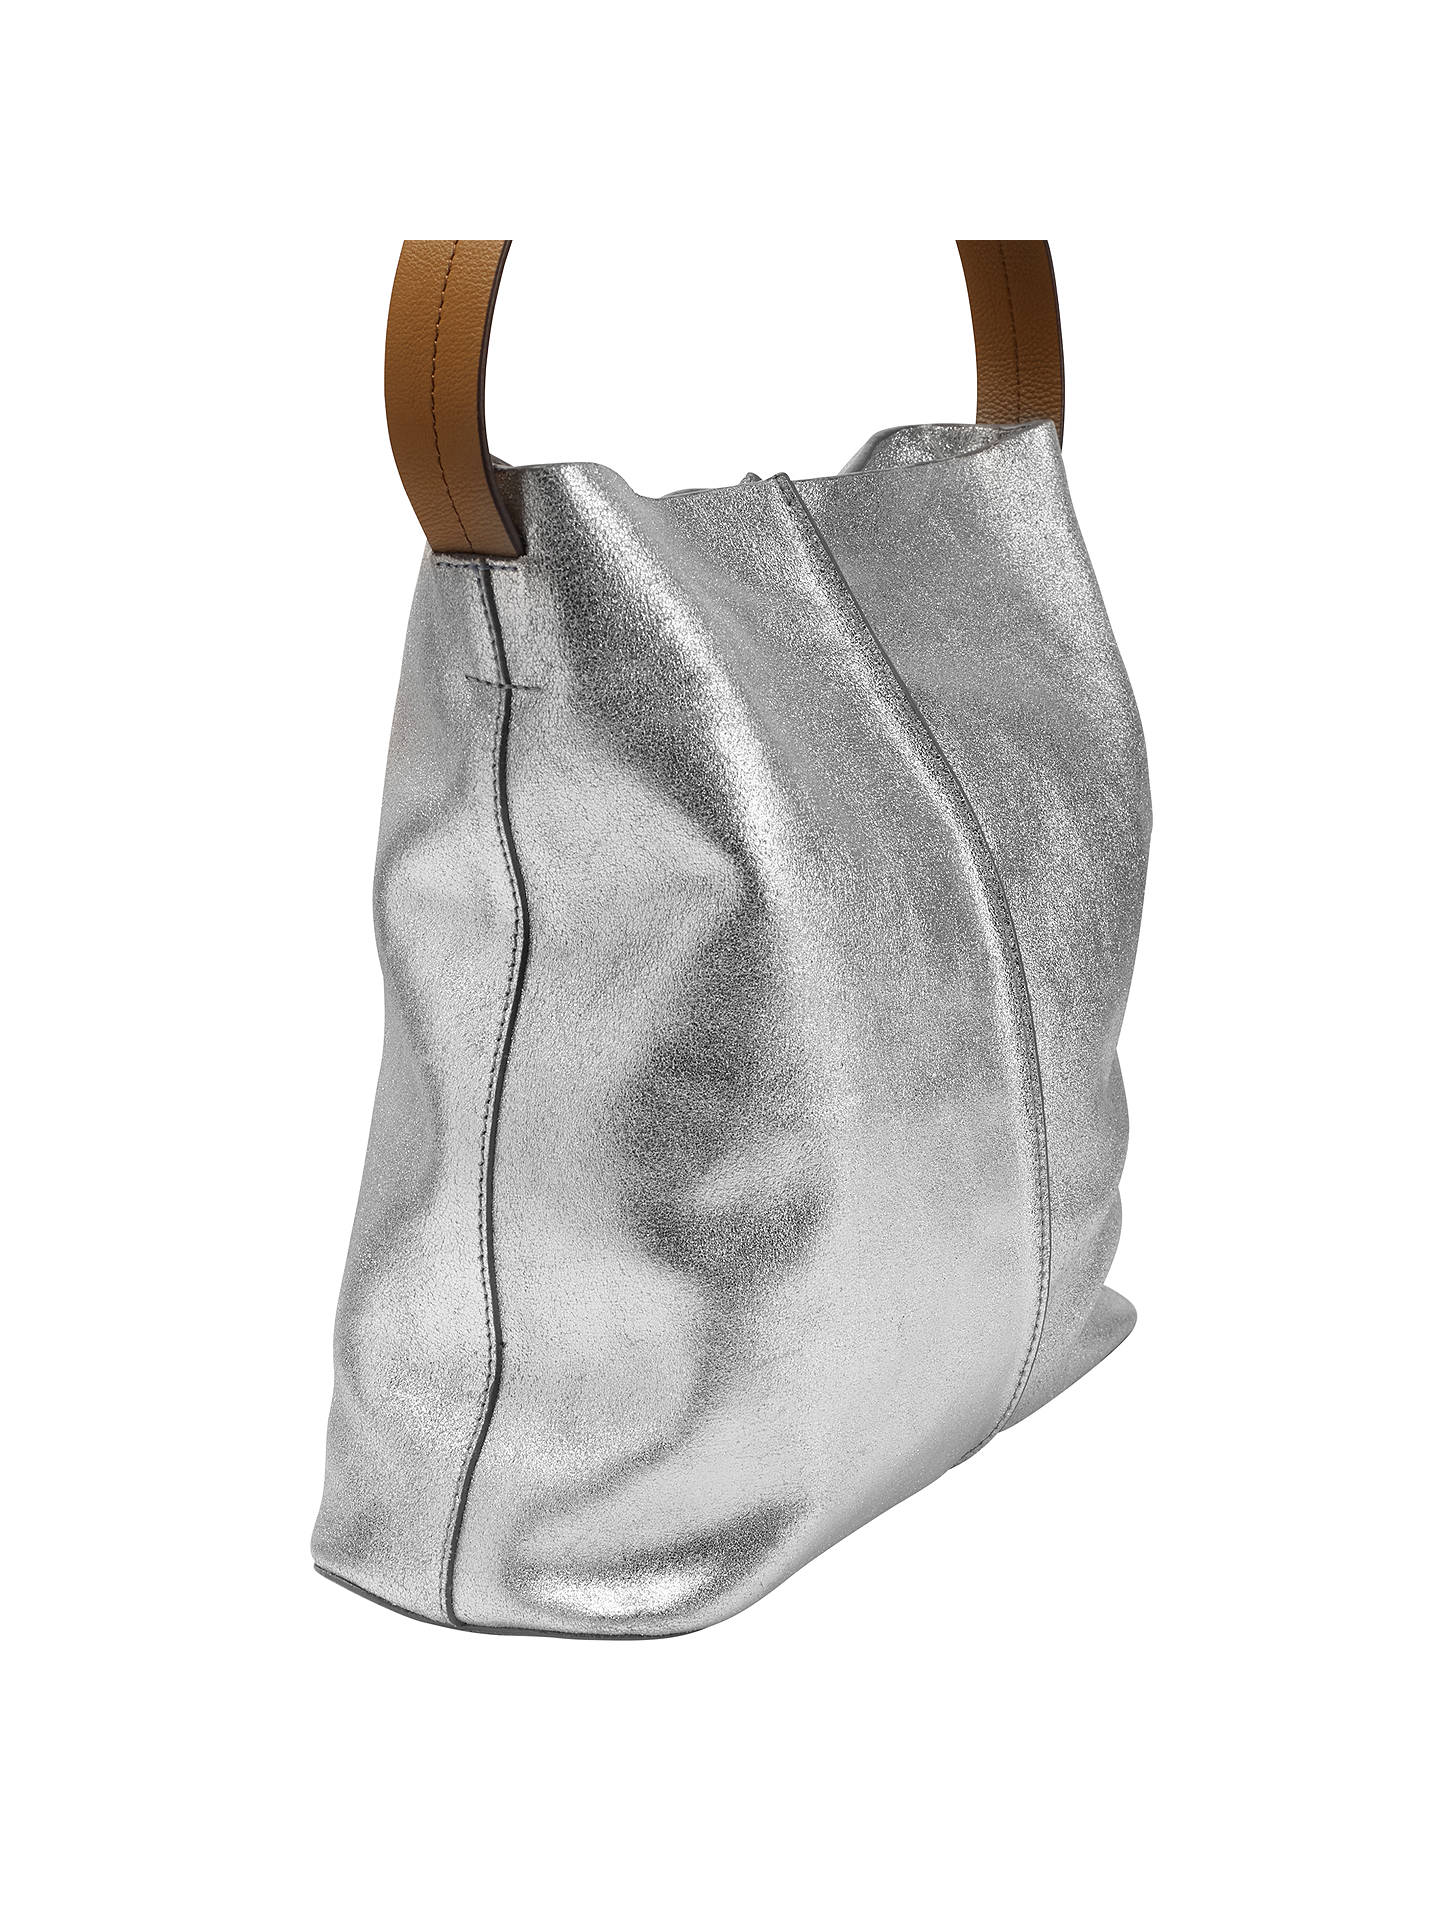 White Stuff Nelly Leather Slouch Hobo Bag Silver Online At Johnlewis